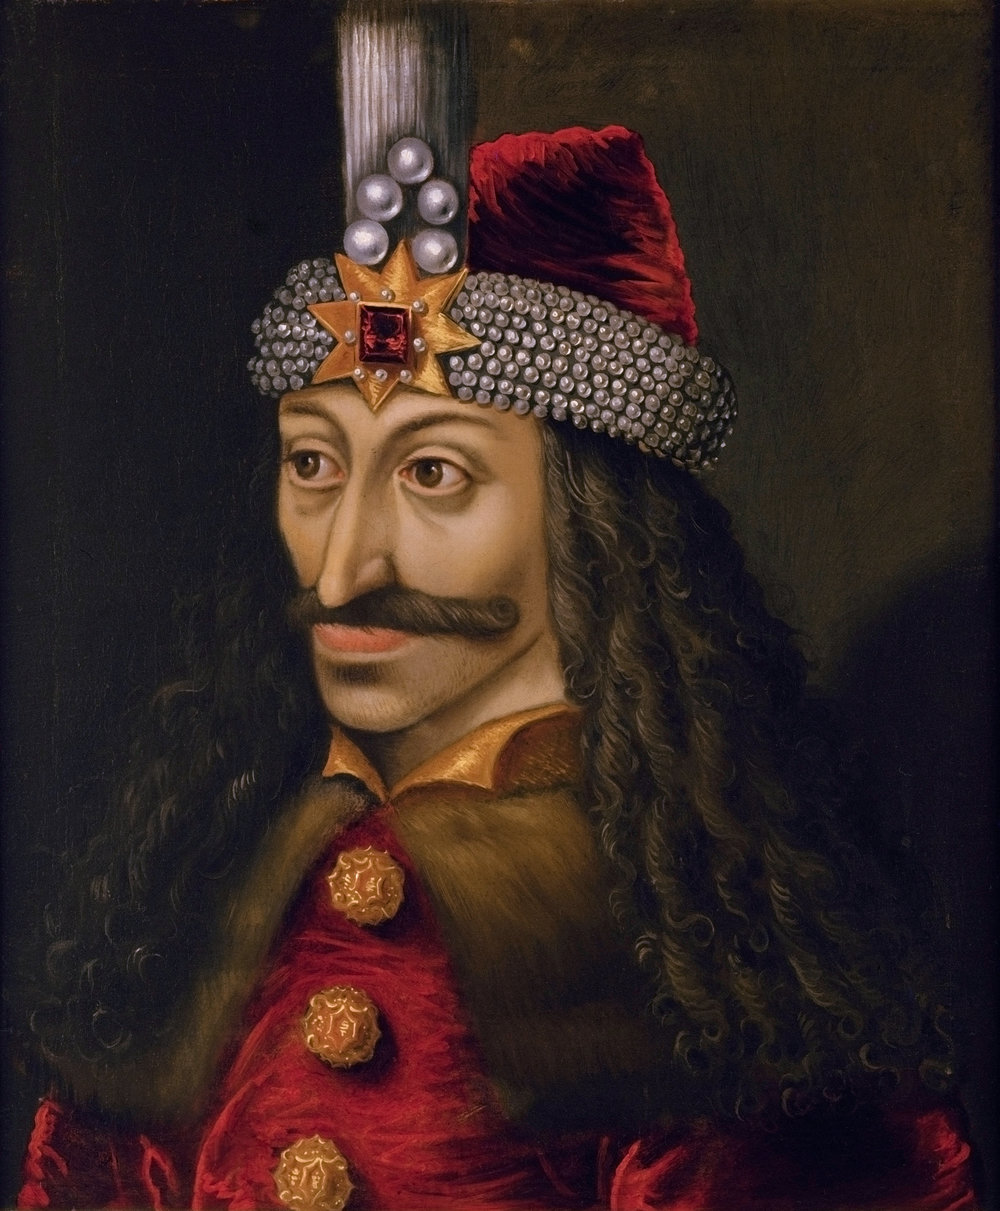 Vlad Tepes, a Romanian prince from the 1400s, became the infamous Dracula